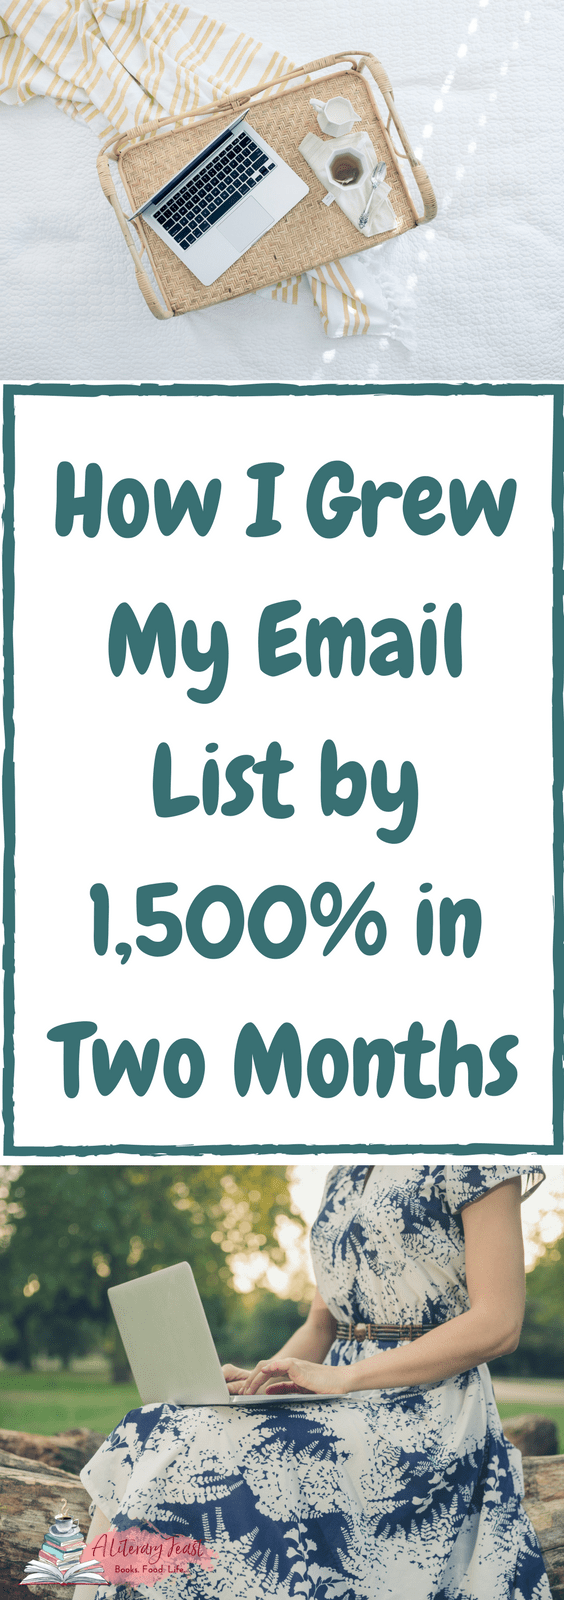 A Literary Feast   small business   blogging   marketing    UpViral   how to grow your email list